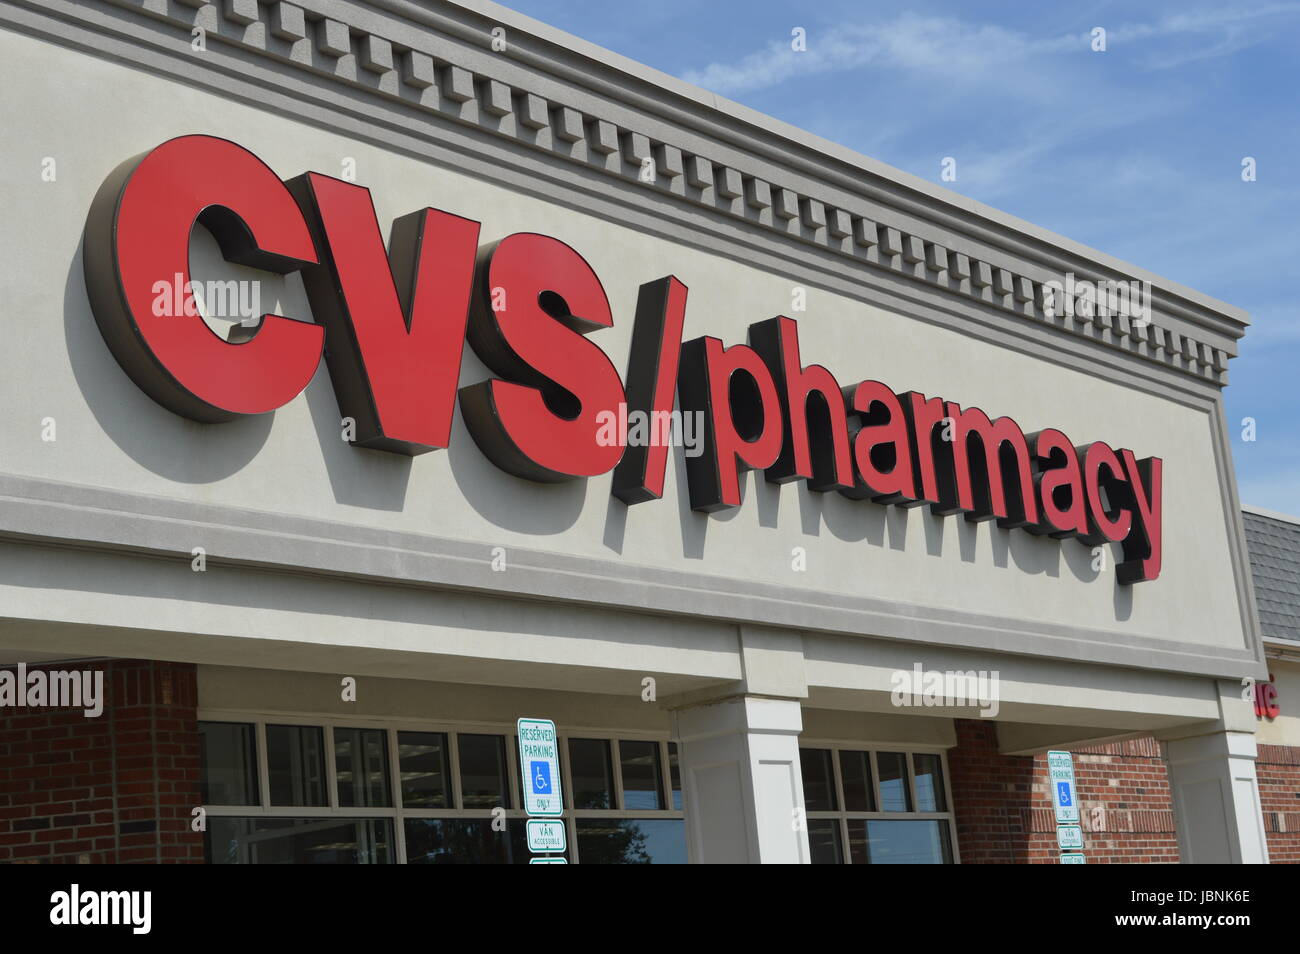 discount pharmacy stock photos  u0026 discount pharmacy stock images